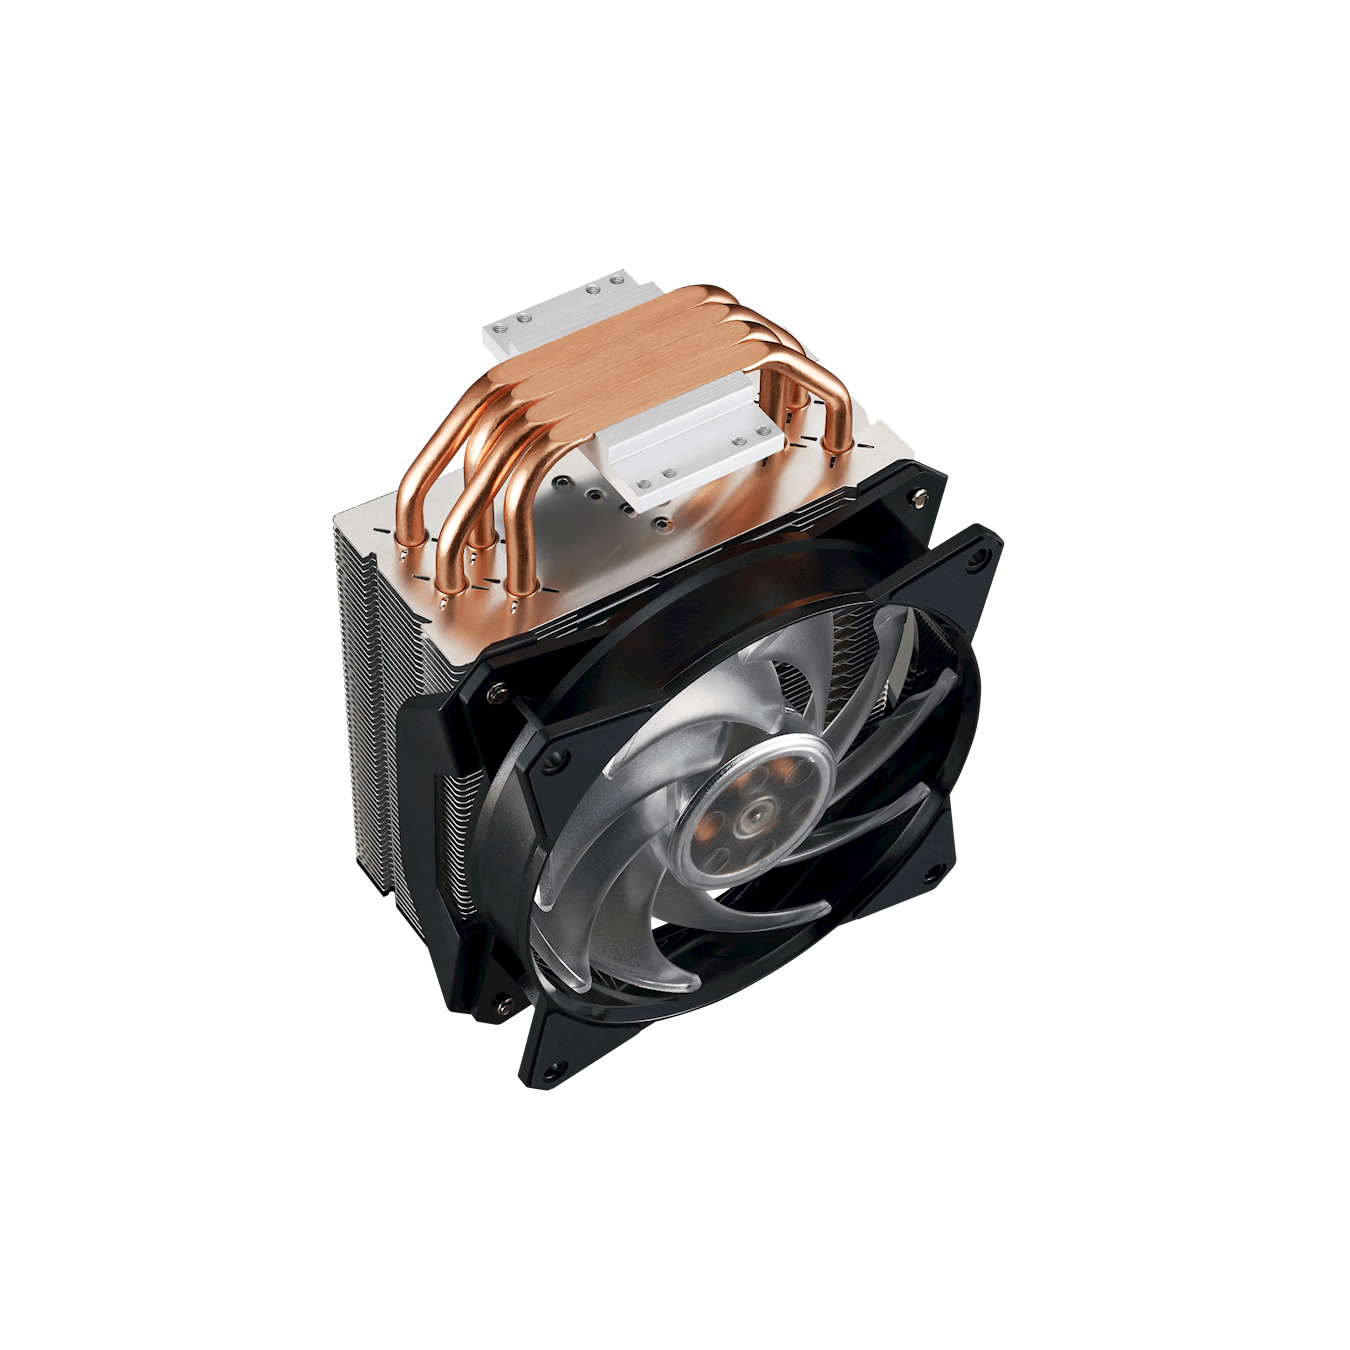 Continuous Direct Contact Technology 2.0 (CDC 2.0) -By compressing heatpipes together, there is 45% more surface area on the cooler base